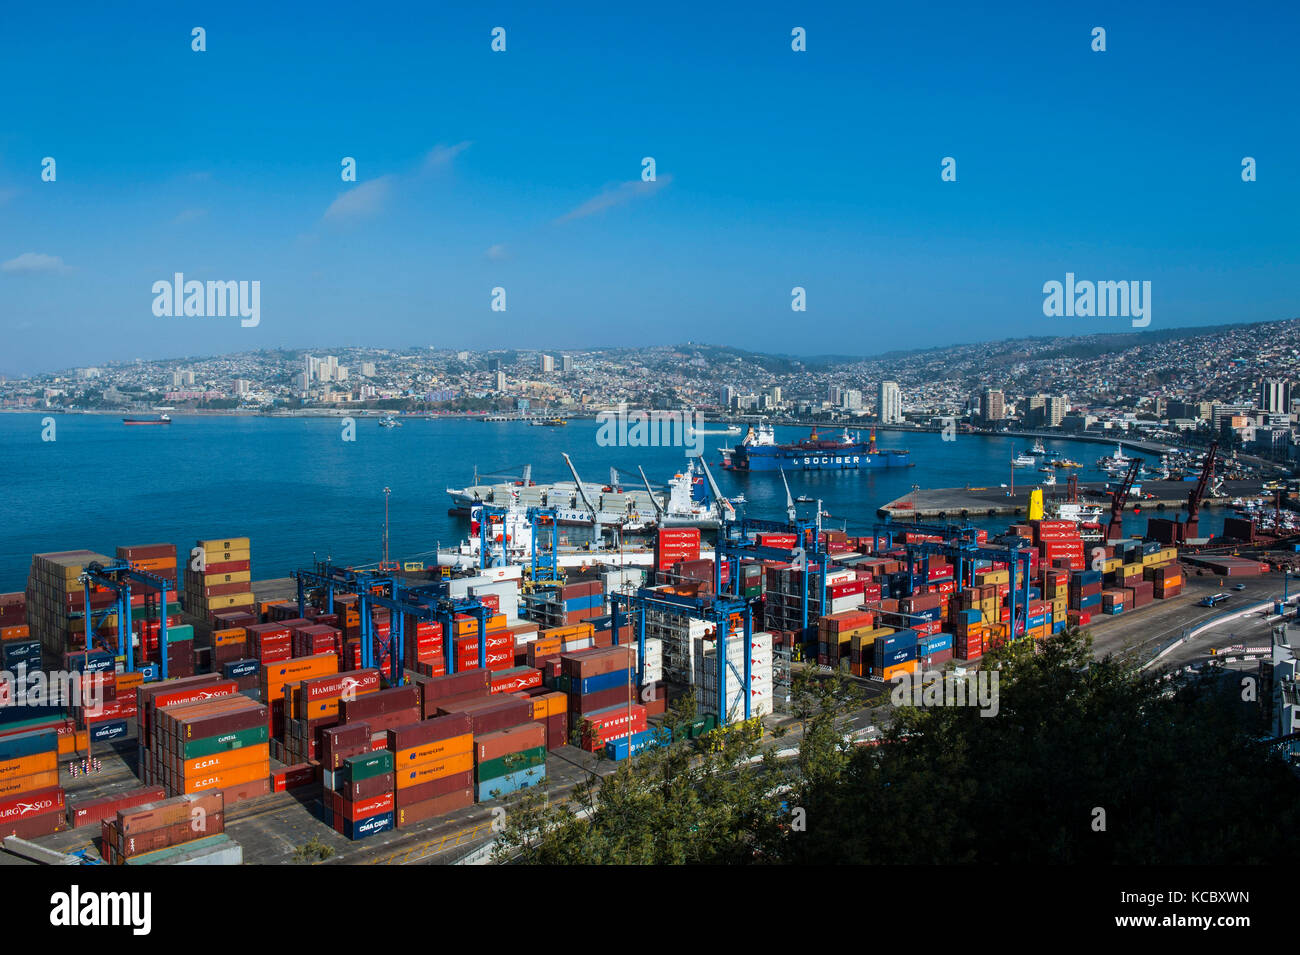 Overlook over the cargo port, Valparaiso, Chile - Stock Image